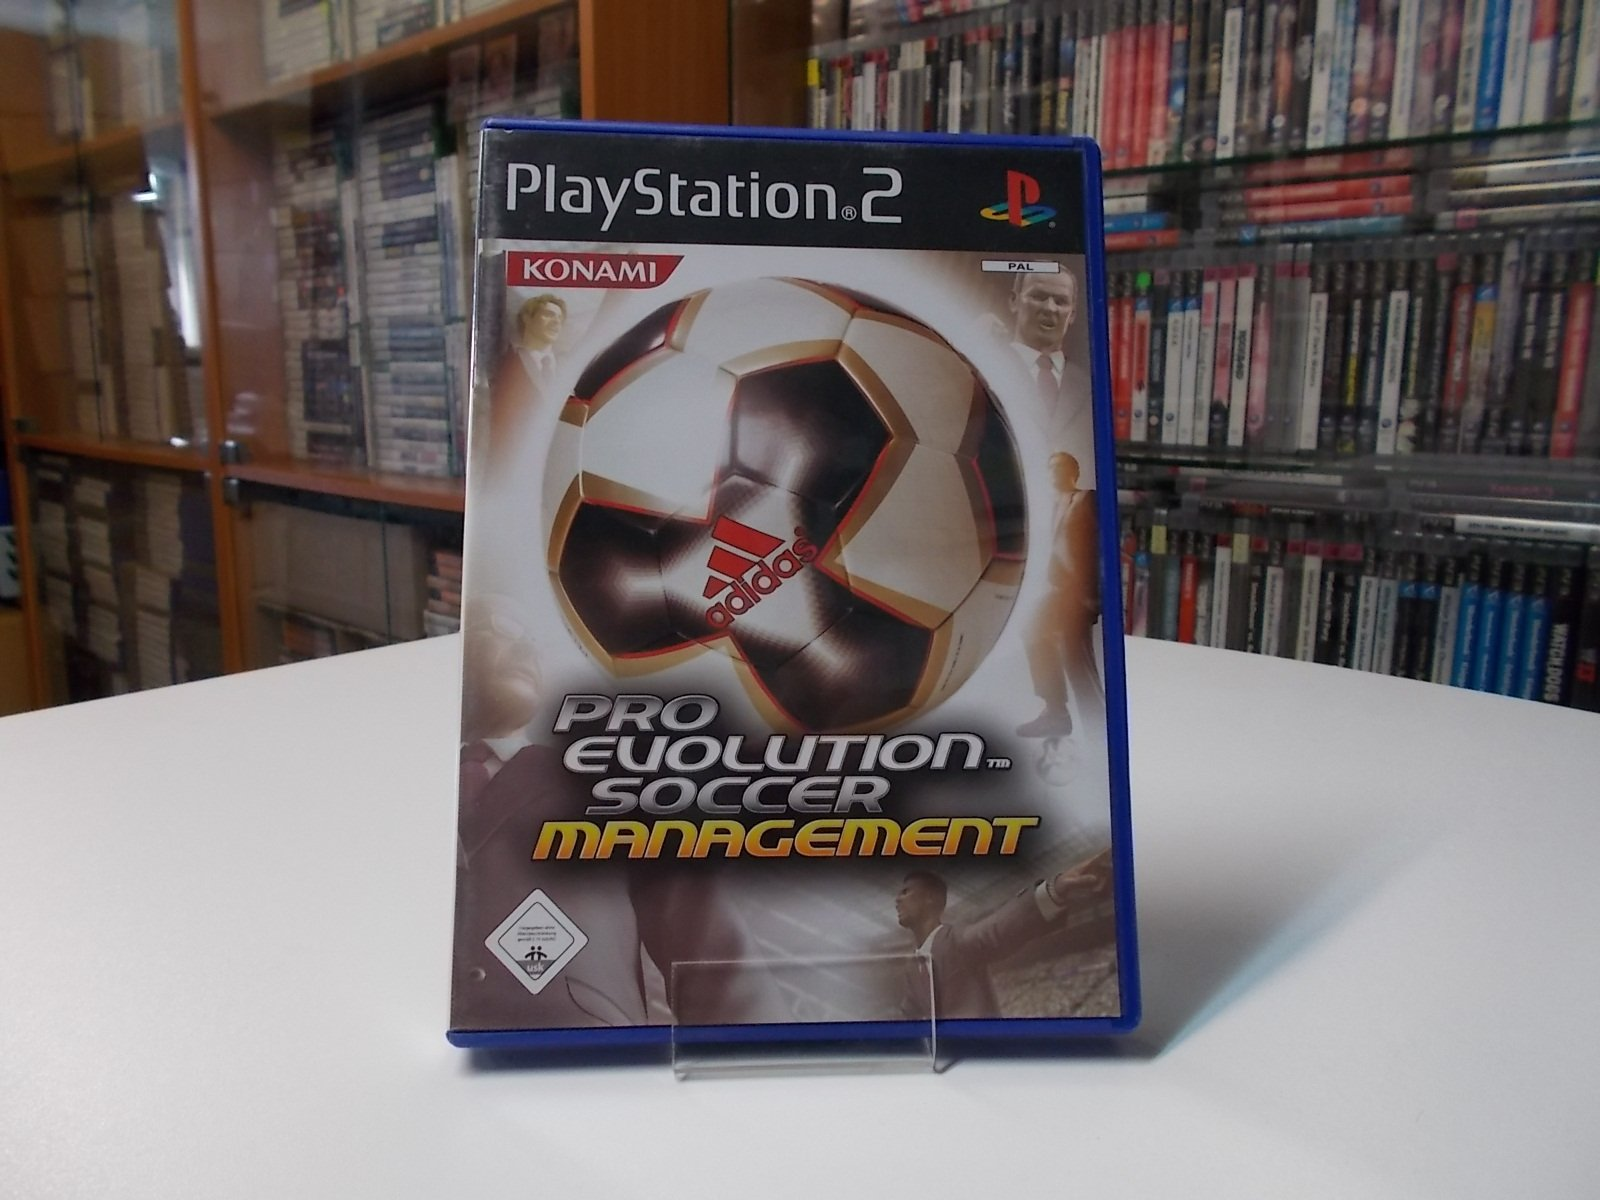 Pro Evolution Soccer Management - GRA Ps2 - Opole 0505